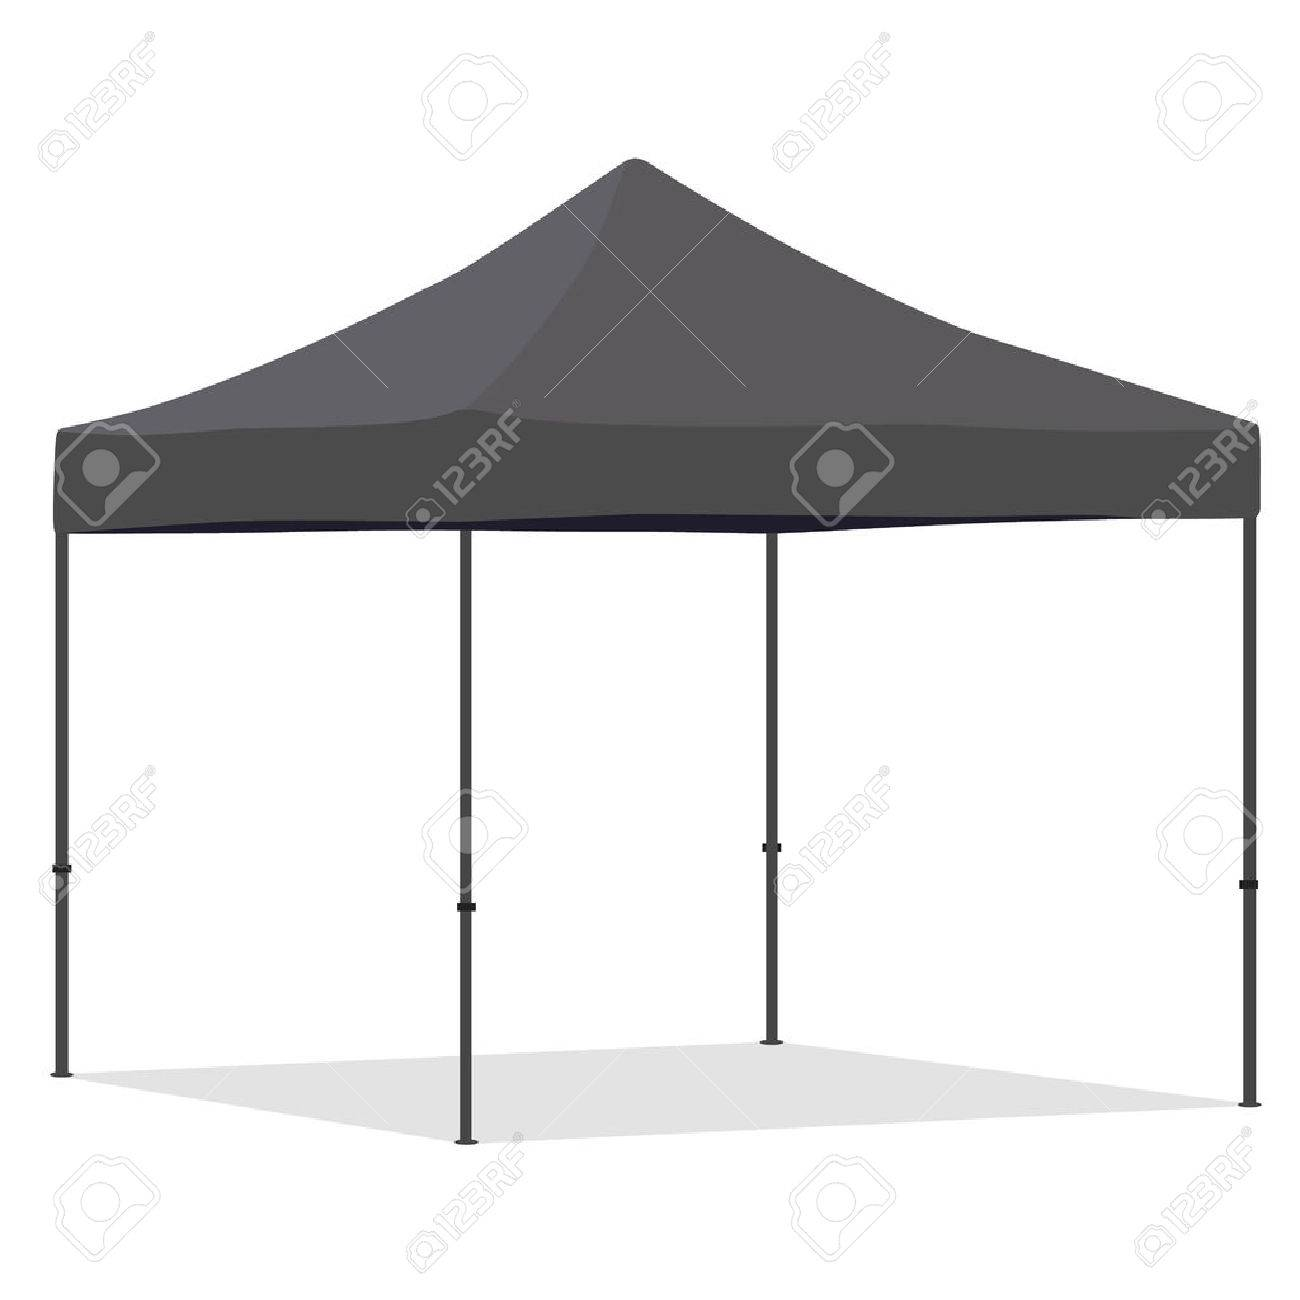 Grey folding tent vector illustration. Pop up gazebo. Canopy tent Stock Vector - 45912561  sc 1 st  123RF.com & Grey Folding Tent Vector Illustration. Pop Up Gazebo. Canopy ...